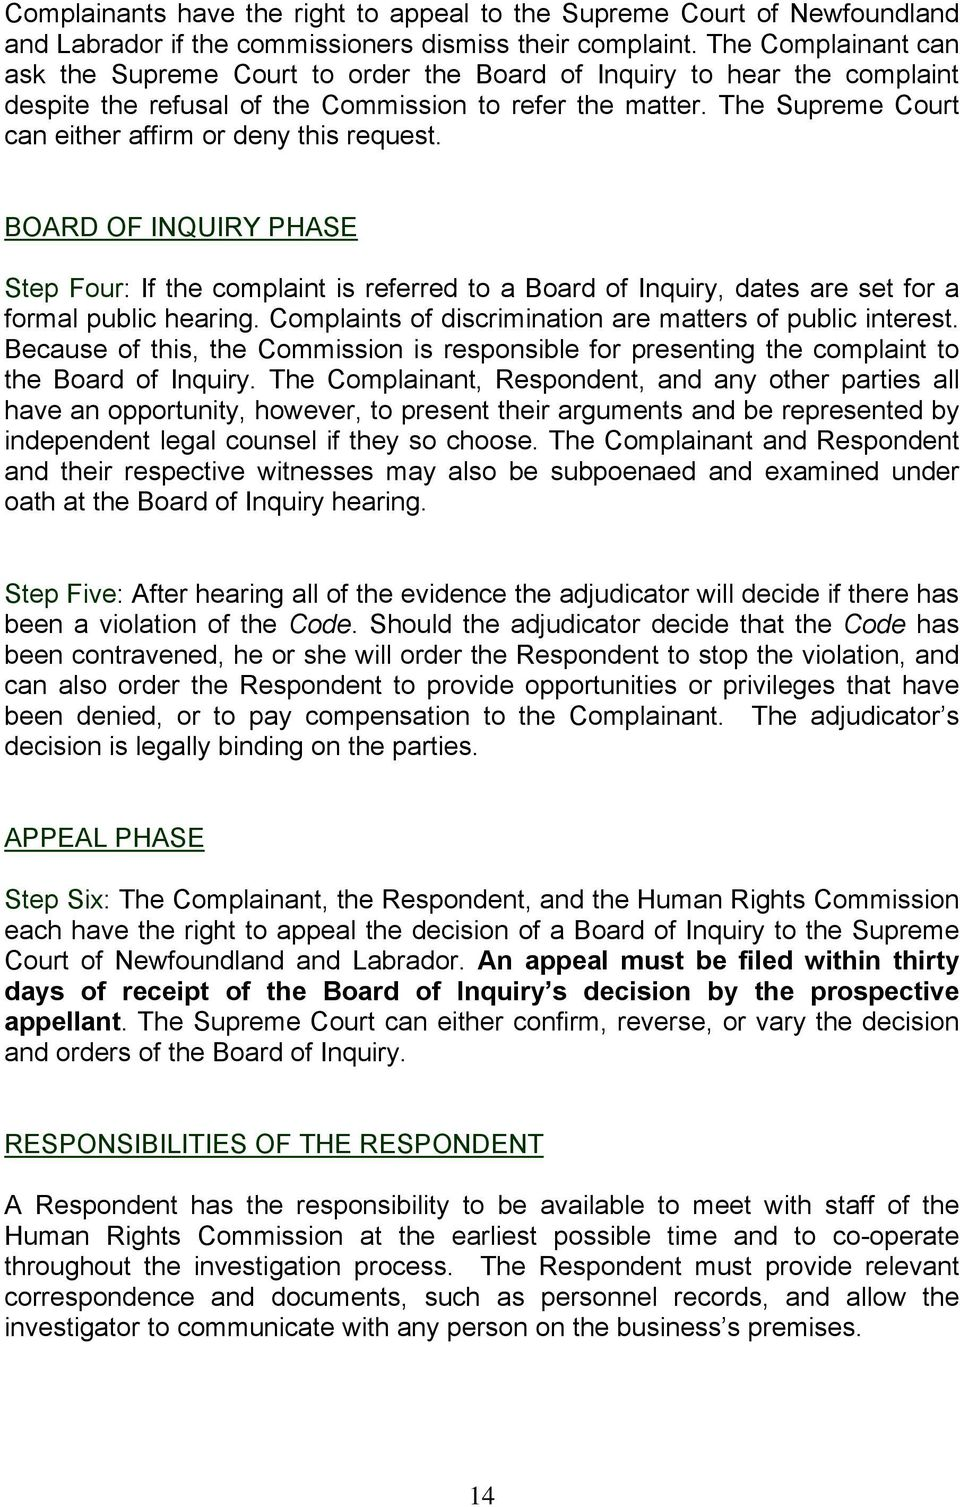 The Supreme Court can either affirm or deny this request. BOARD OF INQUIRY PHASE Step Four: If the complaint is referred to a Board of Inquiry, dates are set for a formal public hearing.